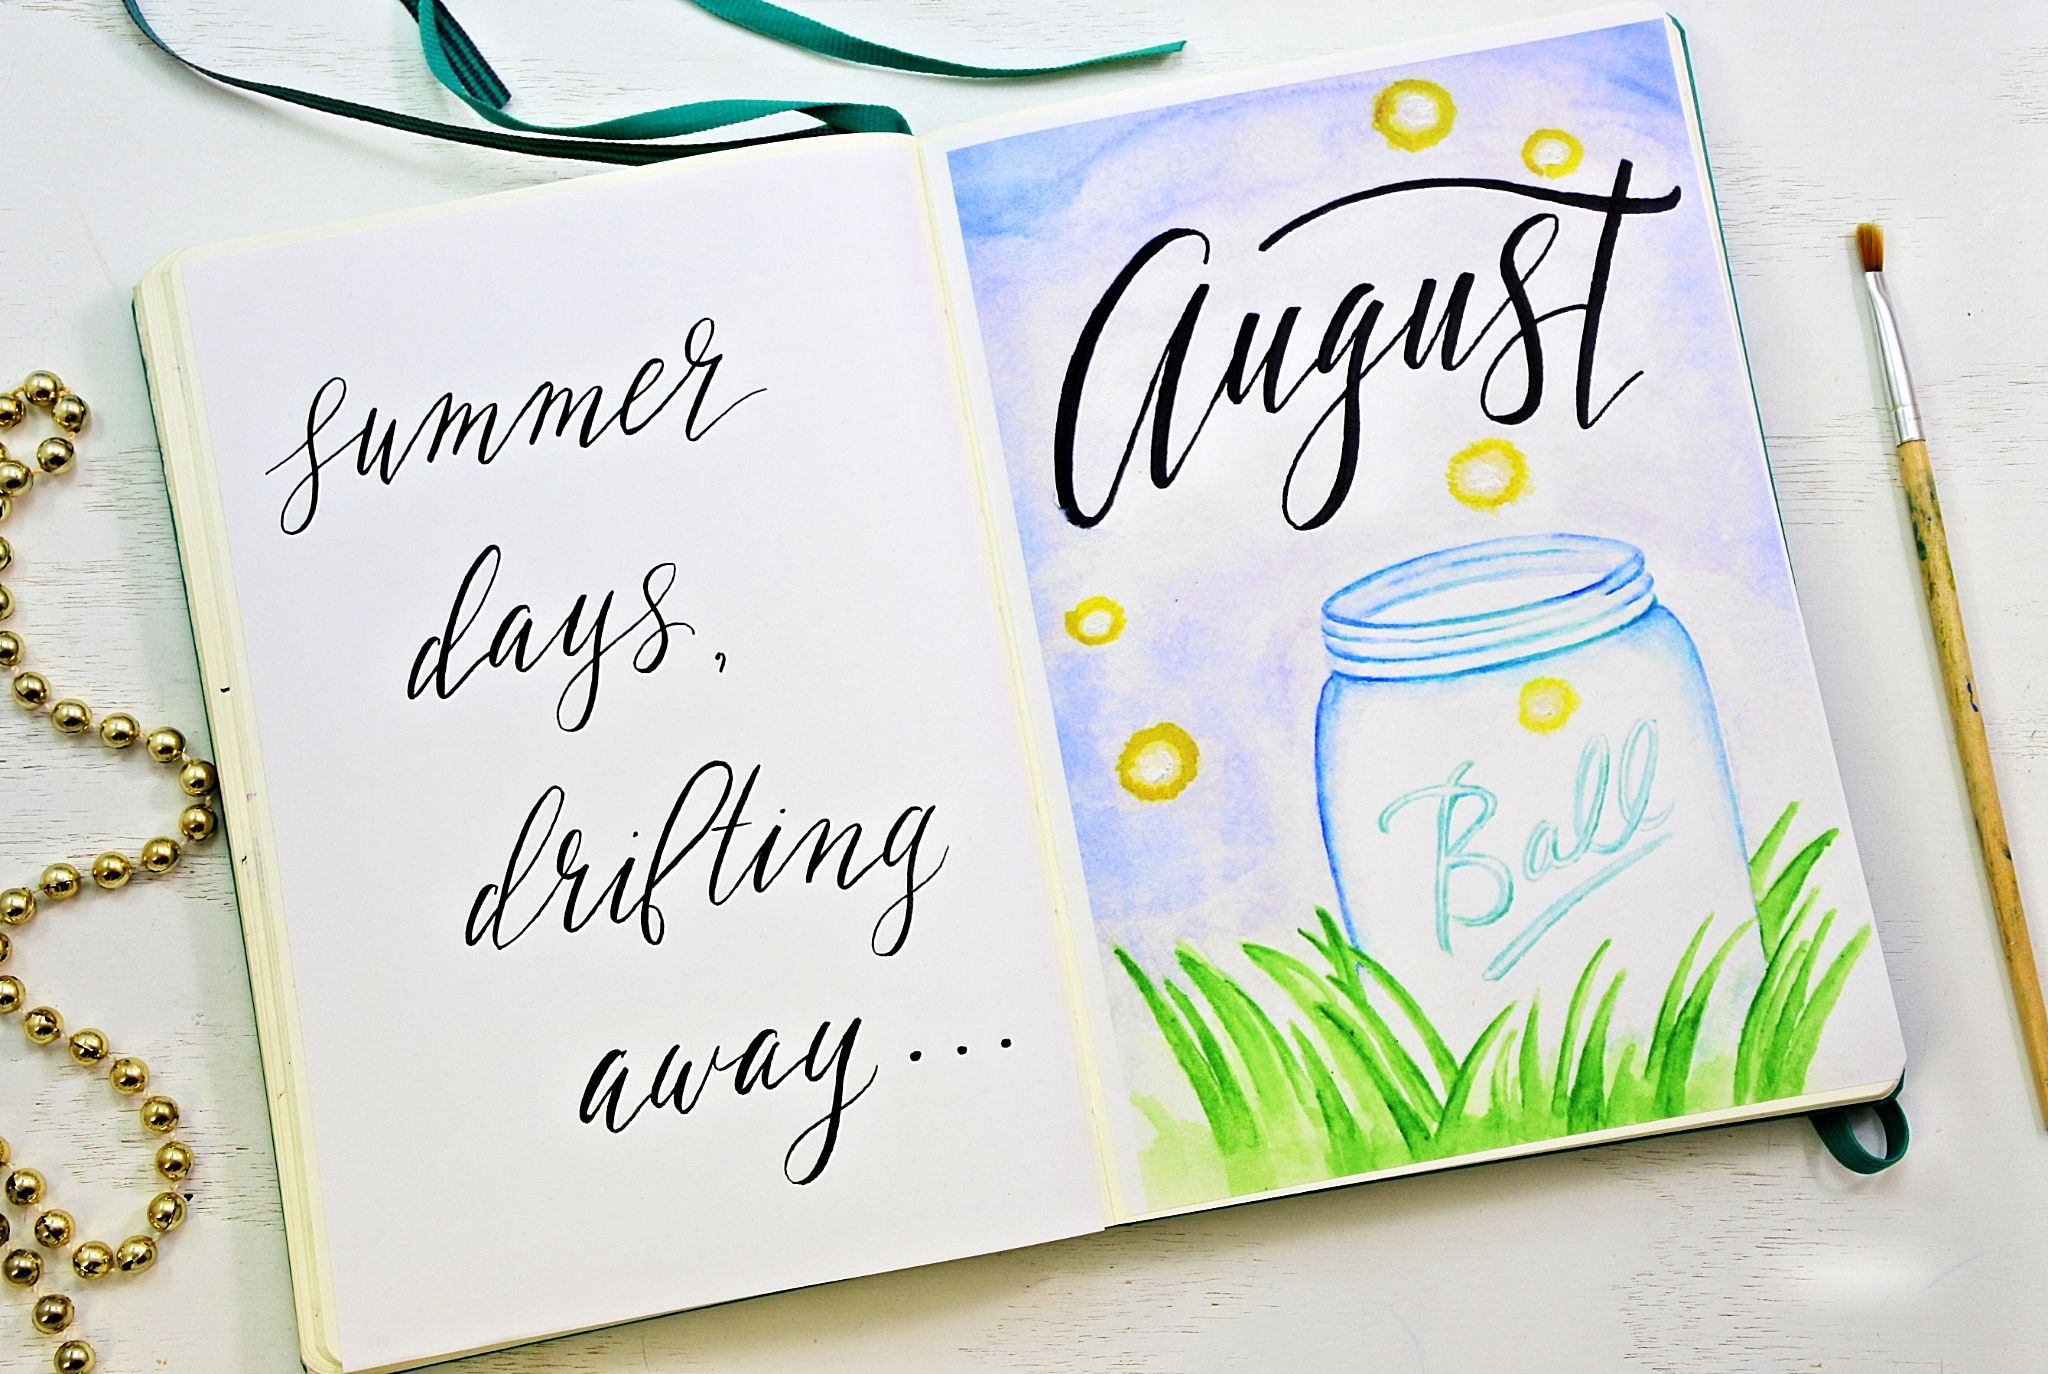 Free Bullet Journal Printables For August ⋆ Sheena Of The Journal - Free Printable Watercolor Notebook Covers